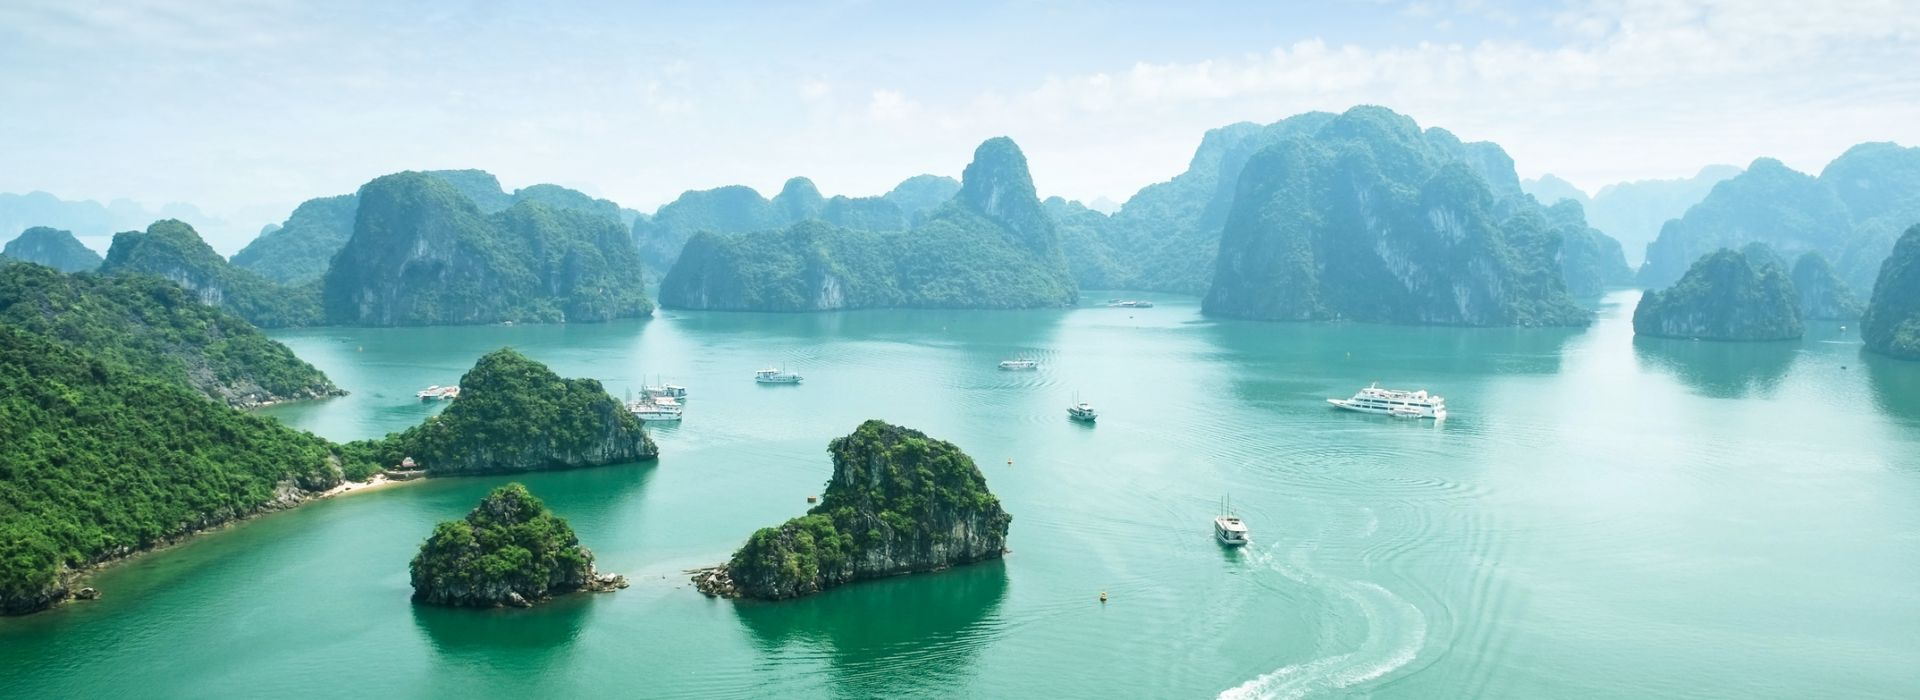 Cruise Tours in Ho Chi Minh City